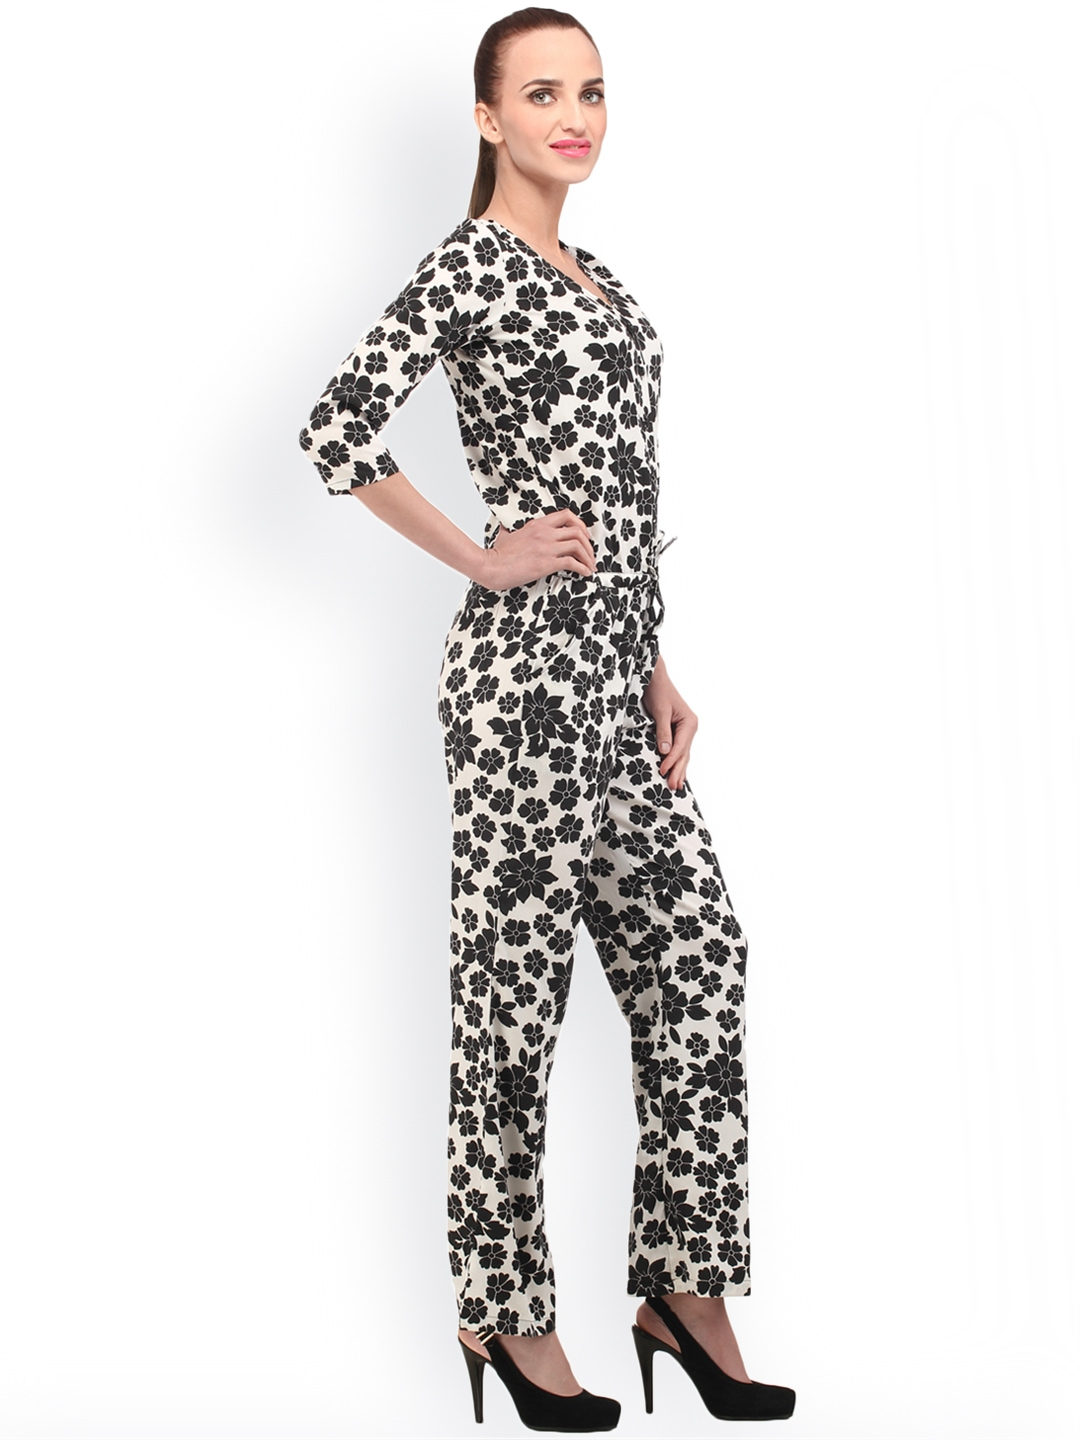 Unique Length 90 Cm Magnificent Womens Printed Satin Jumpsuit  A Stylish Solution That Will Suit Both For Everyday And For Holiday Parties Top With A Collar And Has A Zipper Back And Bottom With Side Pockets The Jumsuit Includes A Satin Belt